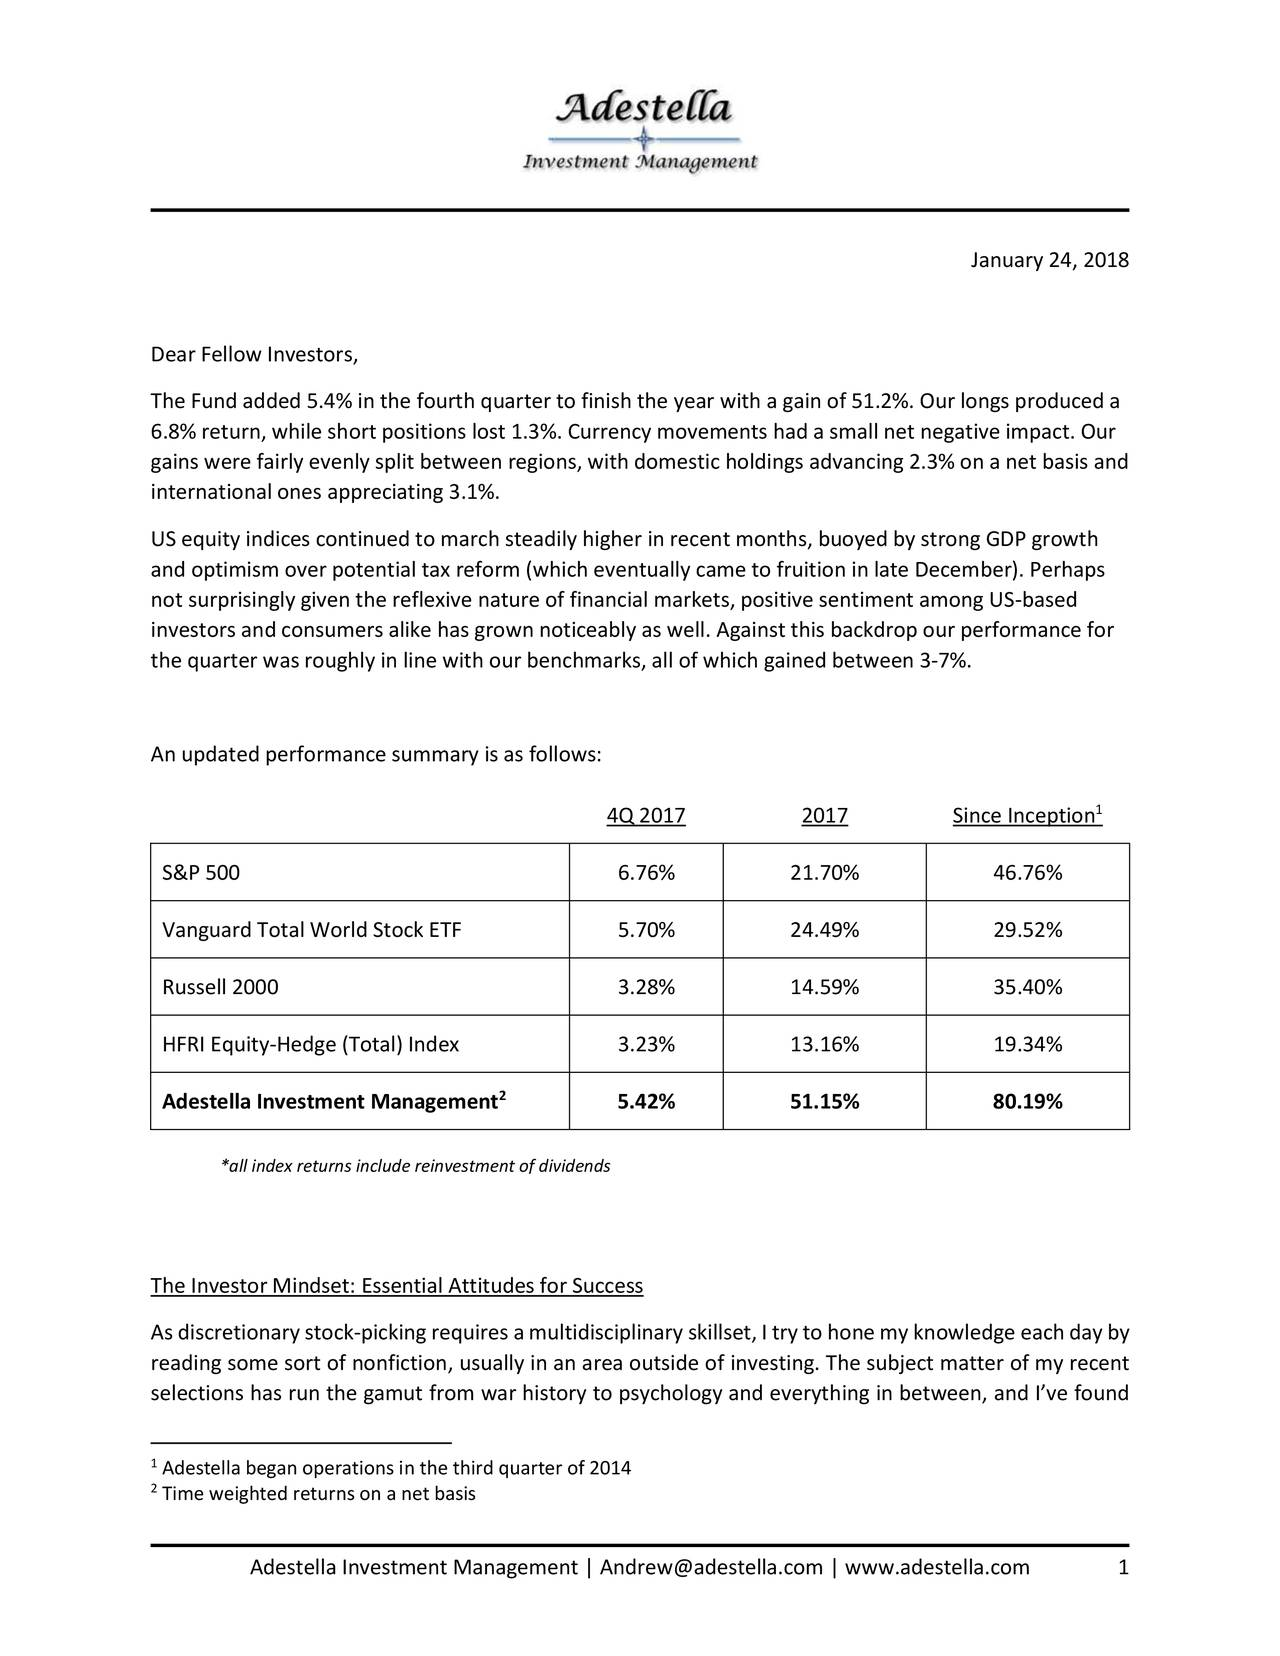 Adestella Investment Management Q  Investor Letter  Seeking Alpha